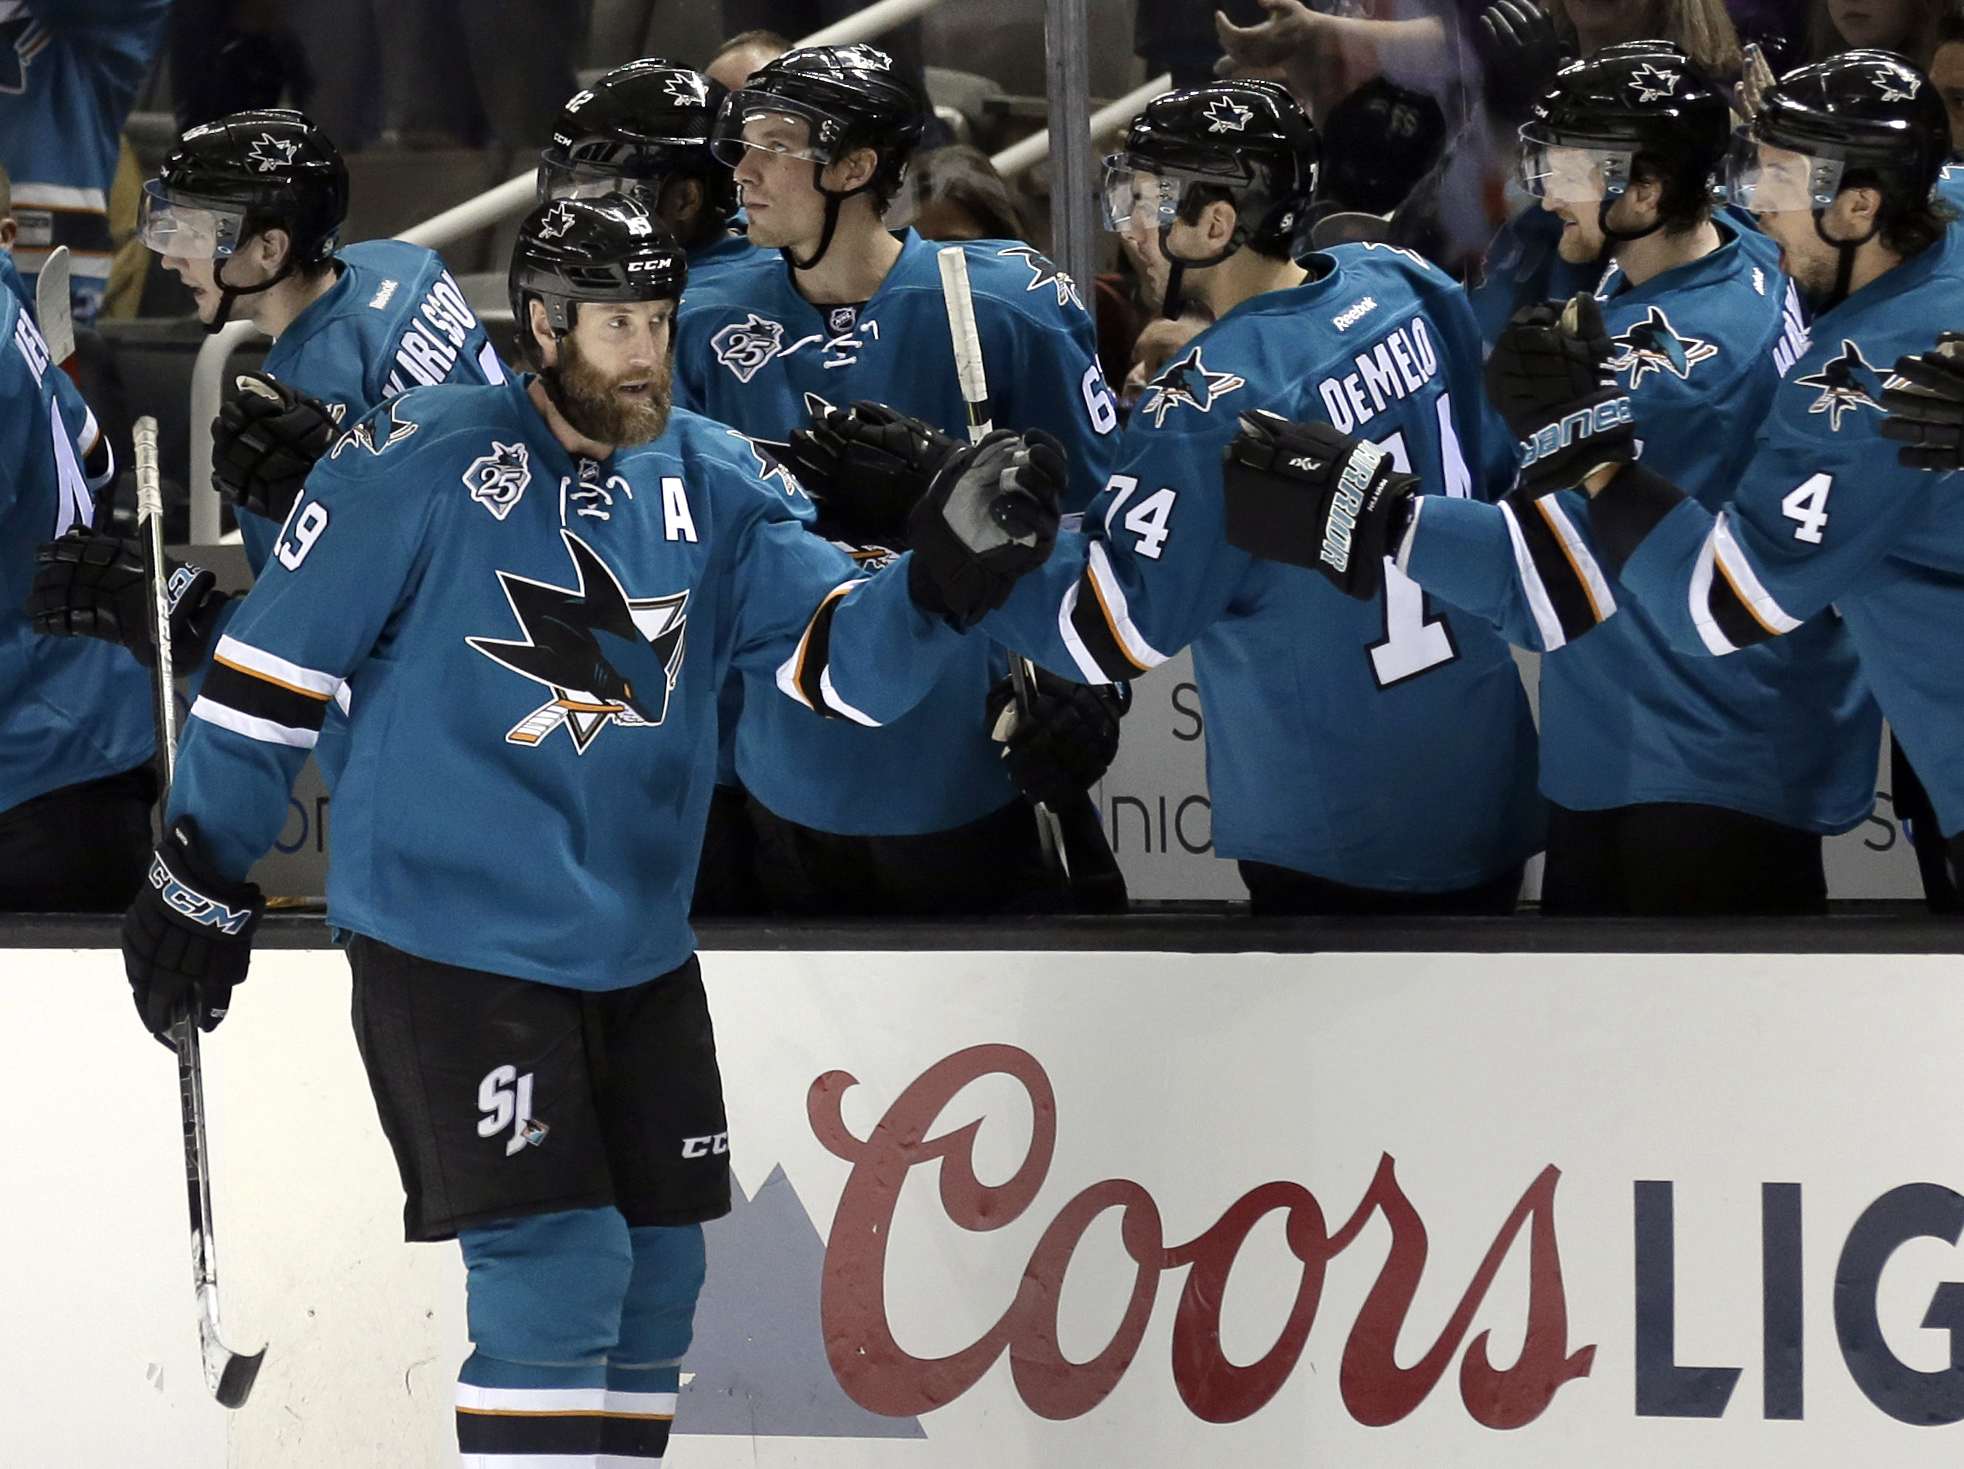 San Jose Sharks' Joe Thornton, left, is congratulated after scoring against the Philadelphia Flyers during the second period of an NHL hockey game Wednesday, Dec. 30, 2015, in San Jose, Calif. (AP Photo/Ben Margot)